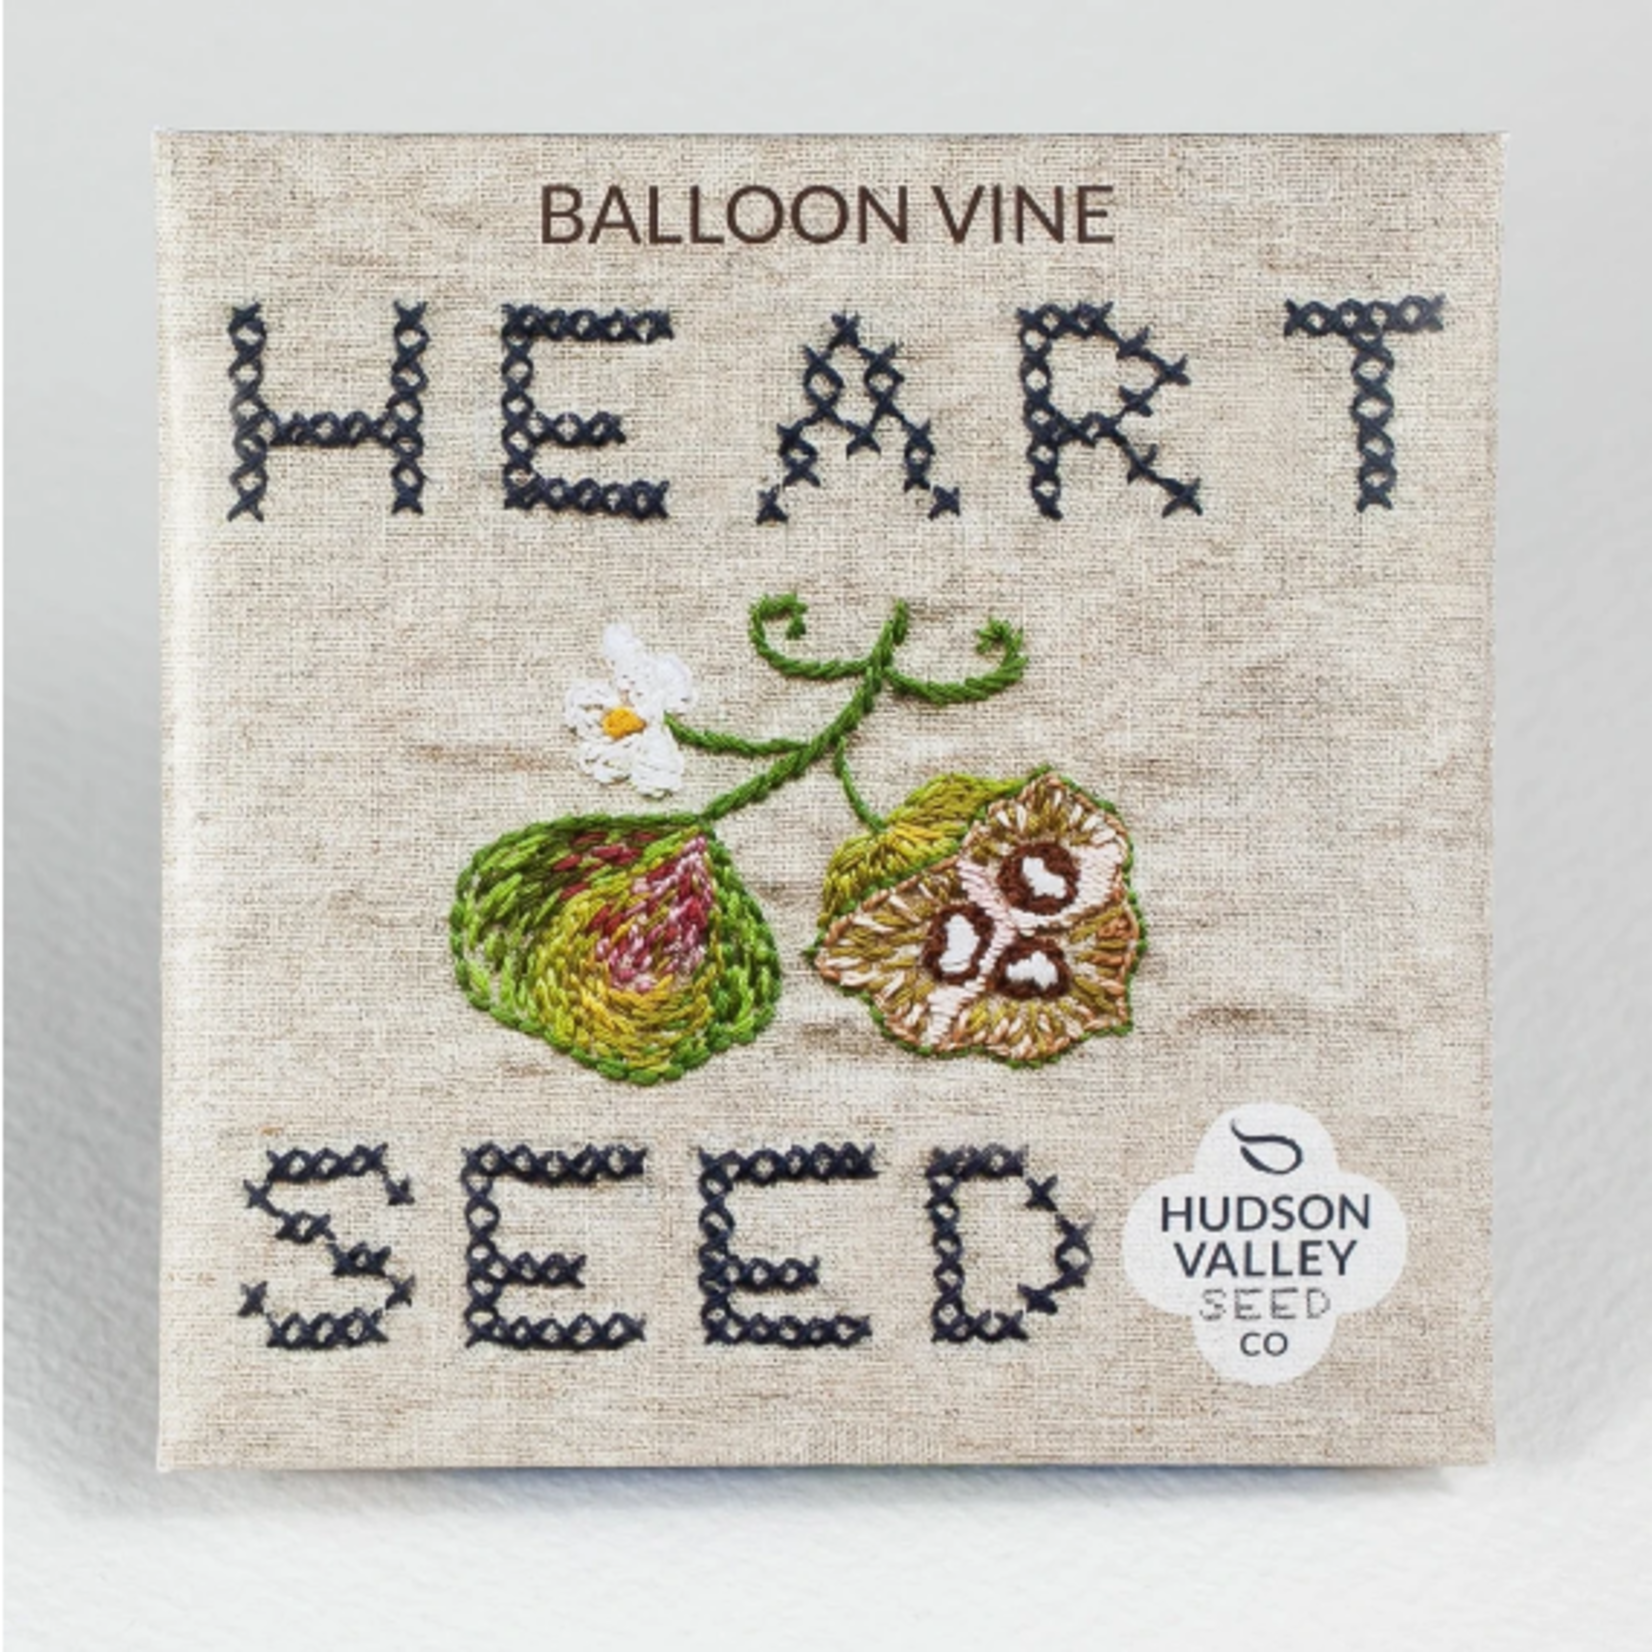 Hudson Valley Seeds Balloon Vine Seeds